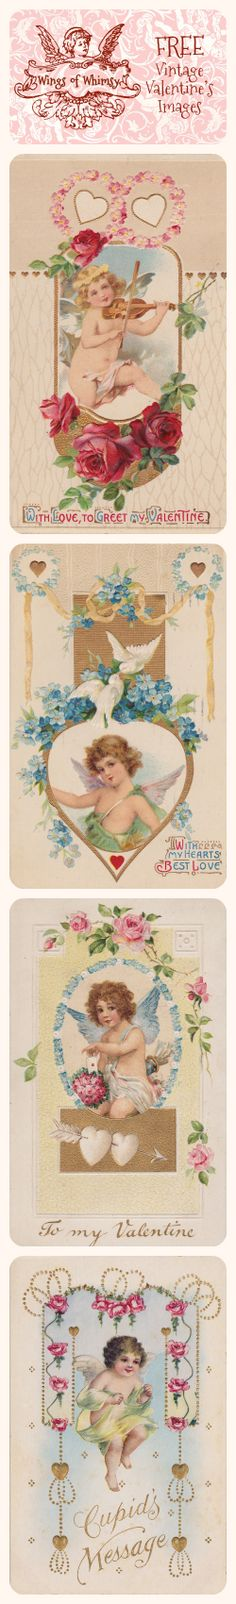 FREE DOWNLOAD - VALENTINE - Wings of Whimsy: Vintage Valentine's Images - free for personal use